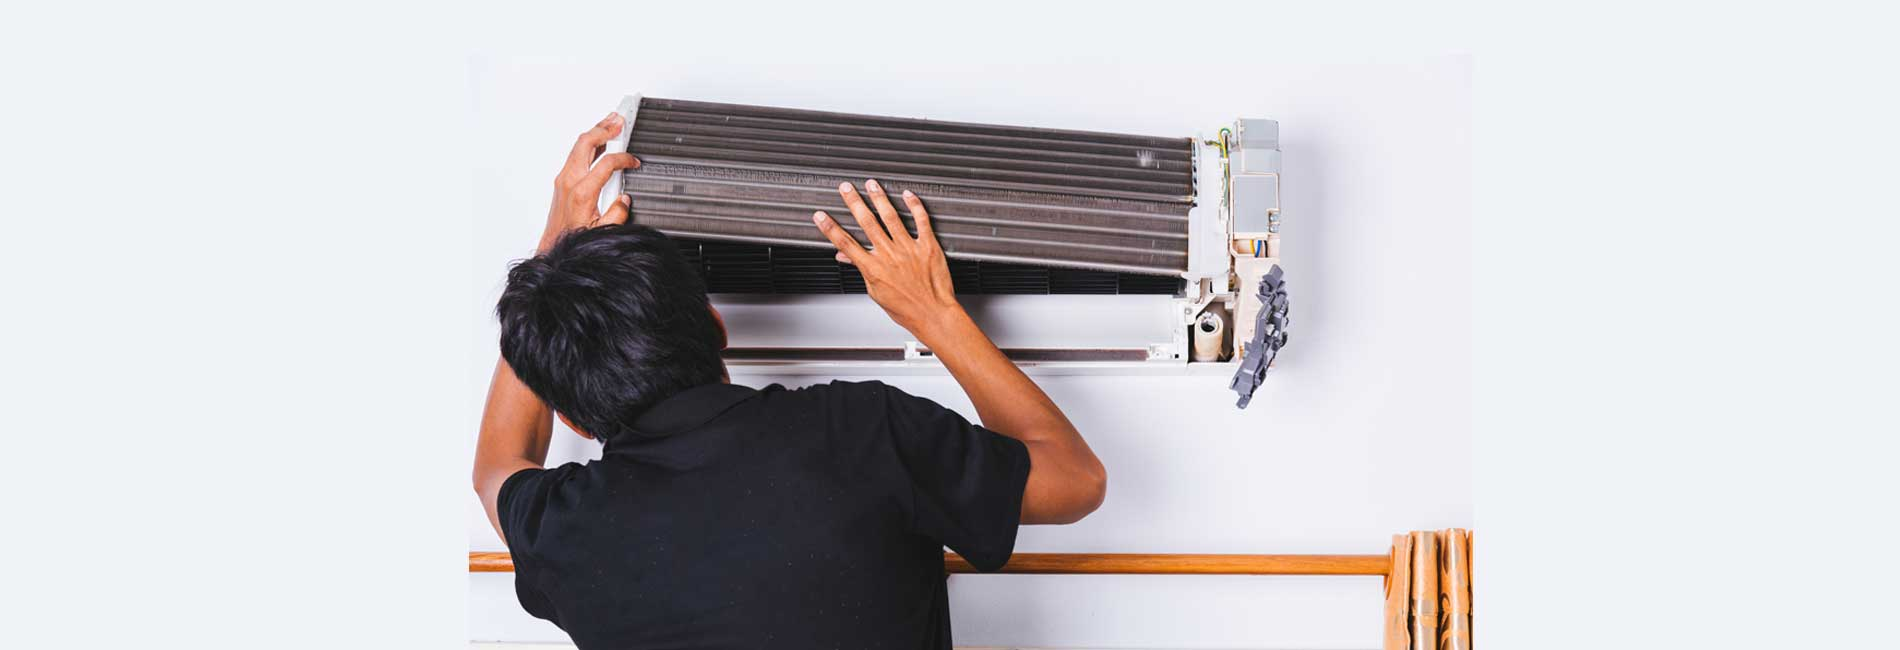 AC Uninstallation in Thiruvanmiyur